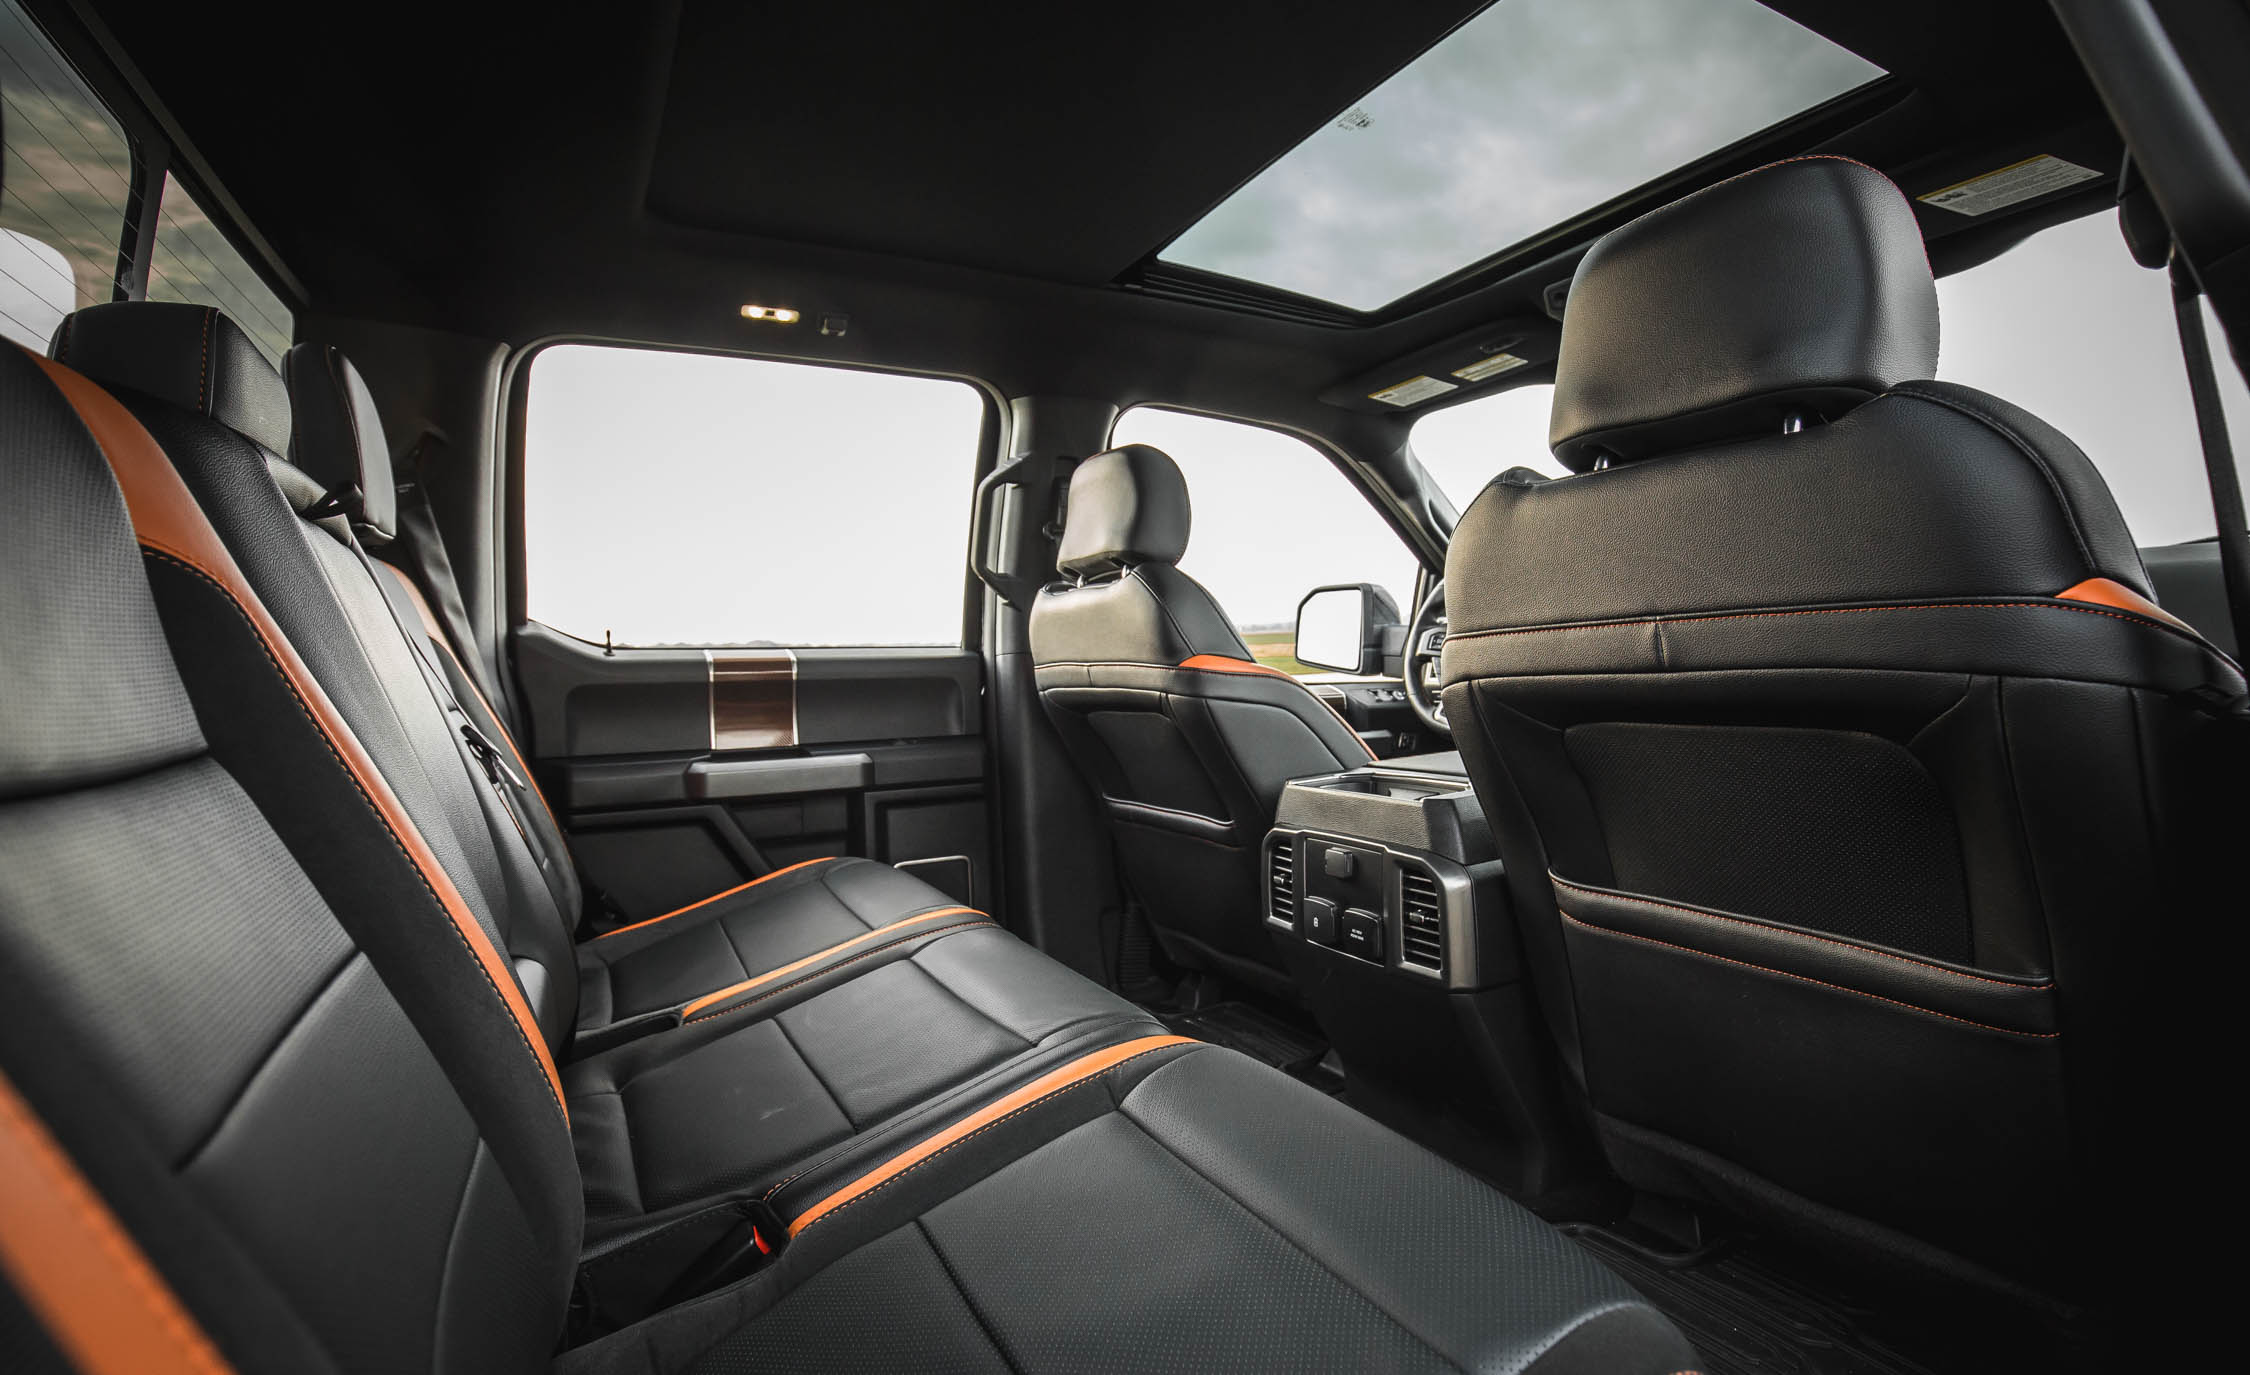 2017 Ford F 150 Raptor SuperCrew Interior Seats Rear Space (View 18 of 47)